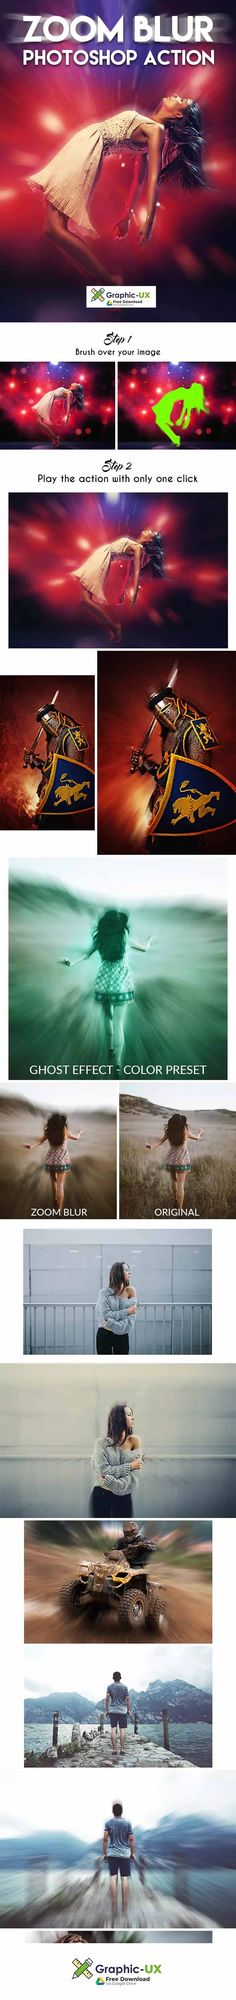 Zoom Blur Photoshop Action – GraphicUX Free Photoshop, Photoshop Actions, Original Image, Lightroom Presets, Blur, Your Image, Wordpress Theme, Photography, Photograph